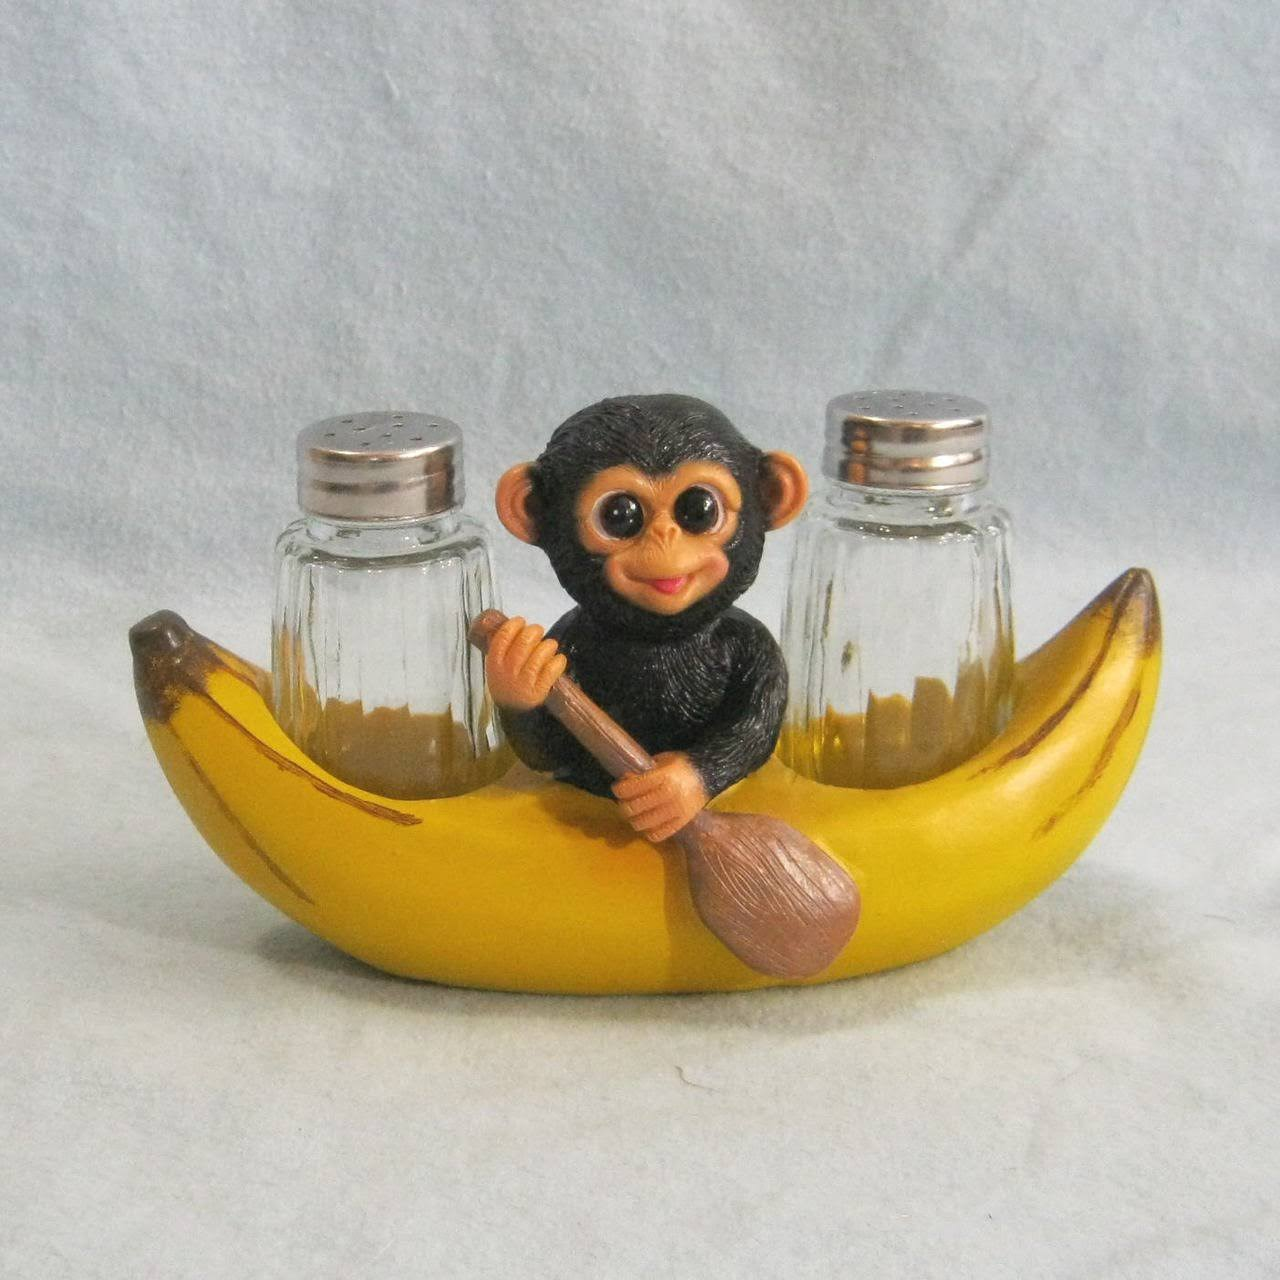 DWK 'Spice A' Peel' Monkey and Banana Salt and Pepper Shaker #248